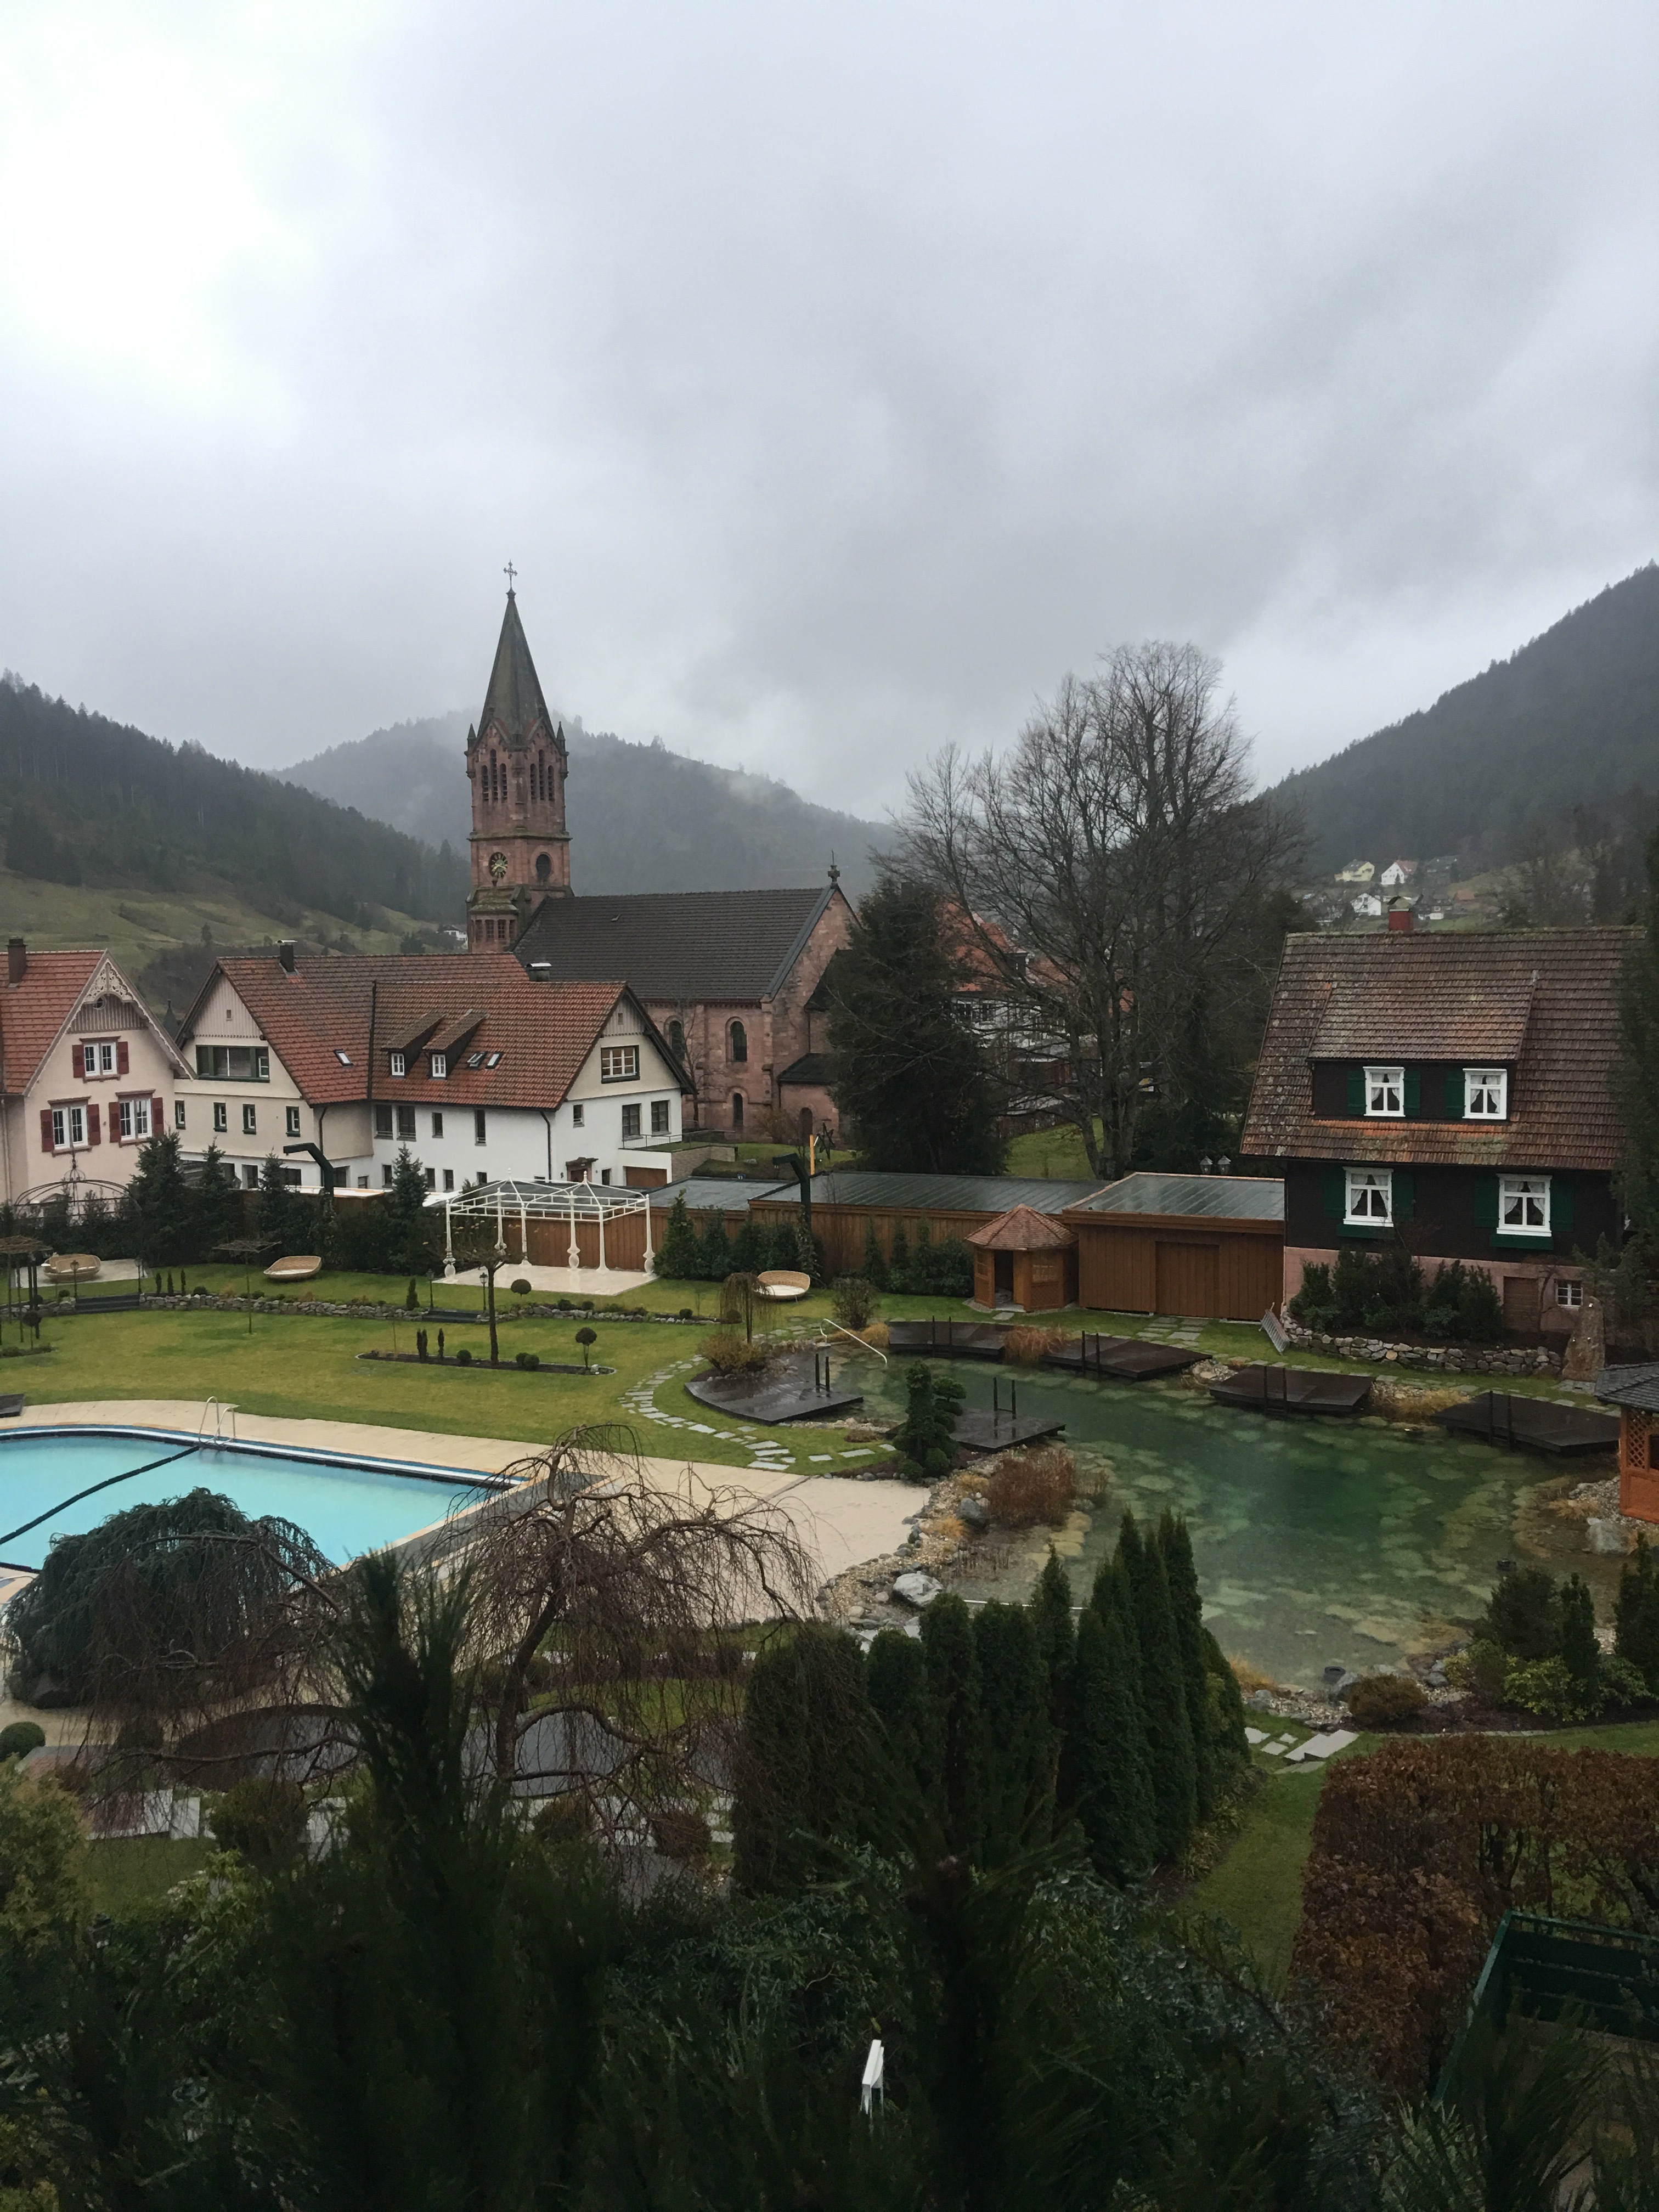 The Bareiss Hotel in the Black Forest; A Thoughtful Hotel.